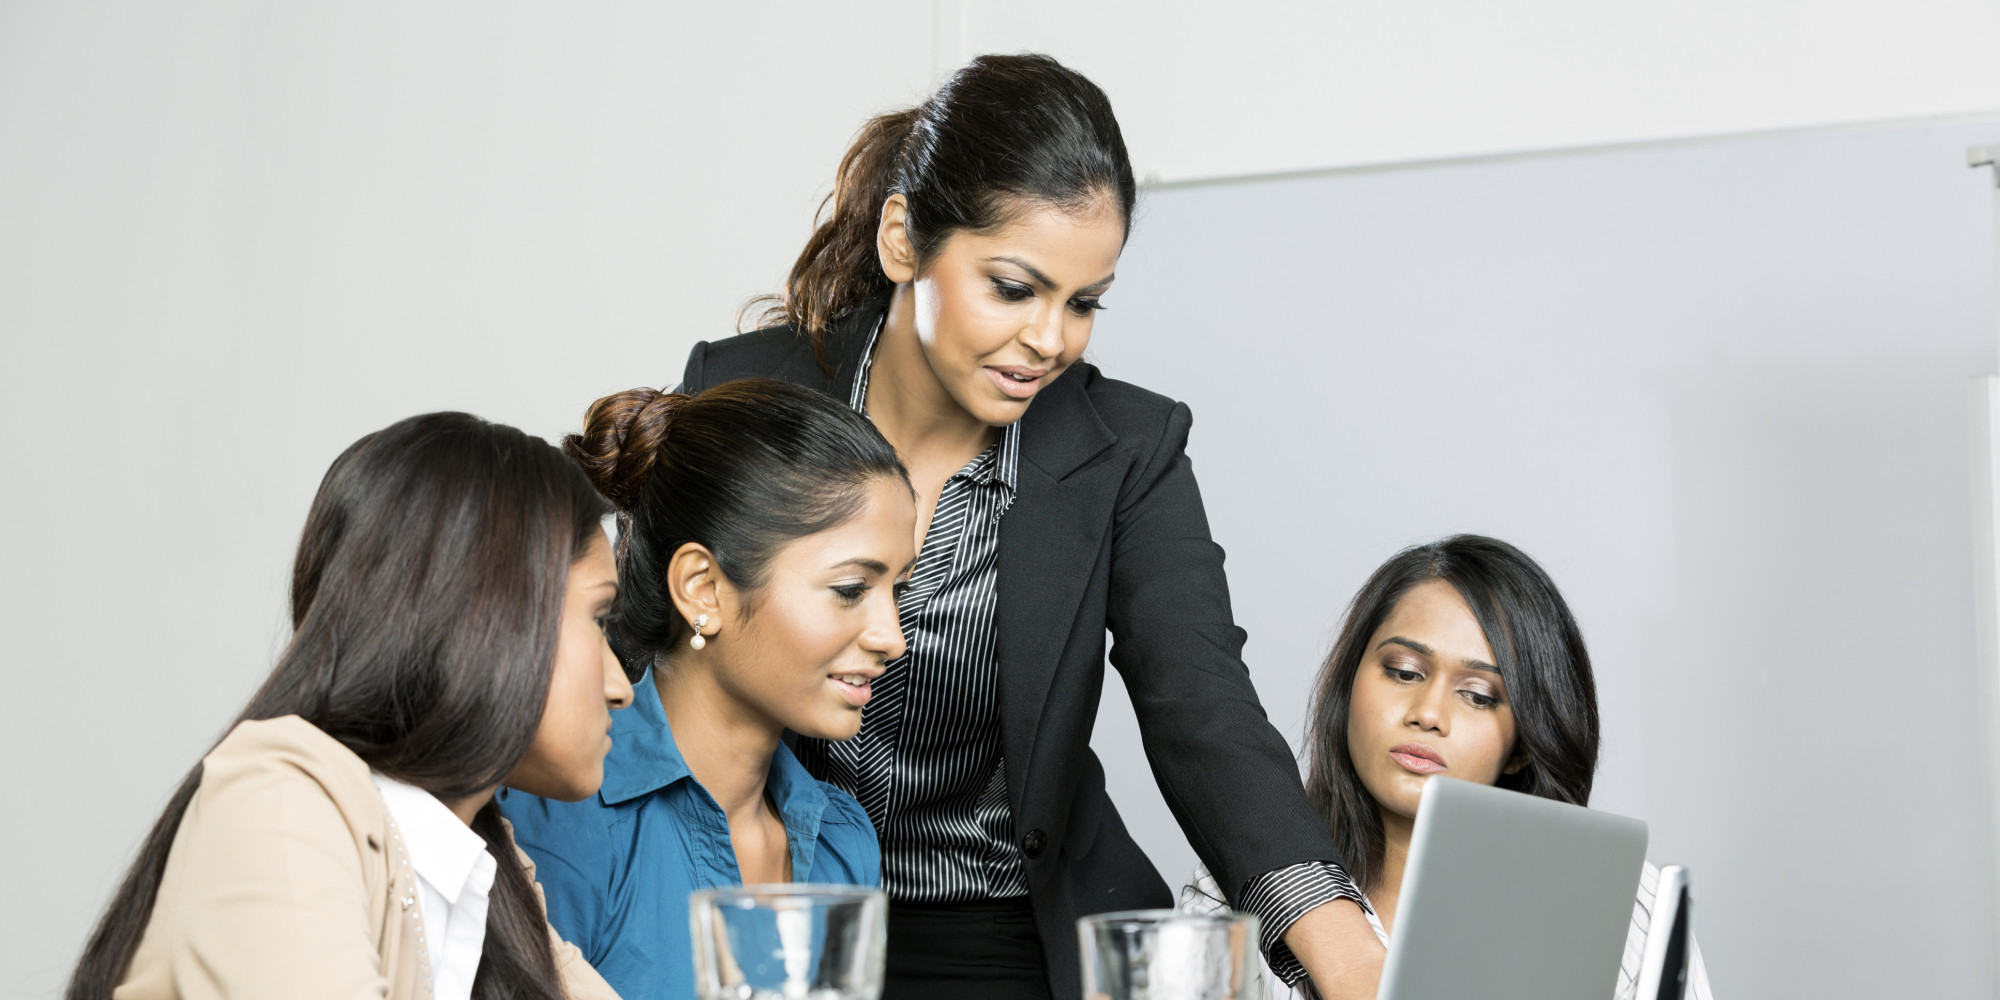 essay on working women Thesis editing service ottawa research paper on working women nemesis essay services help essay writing competition.